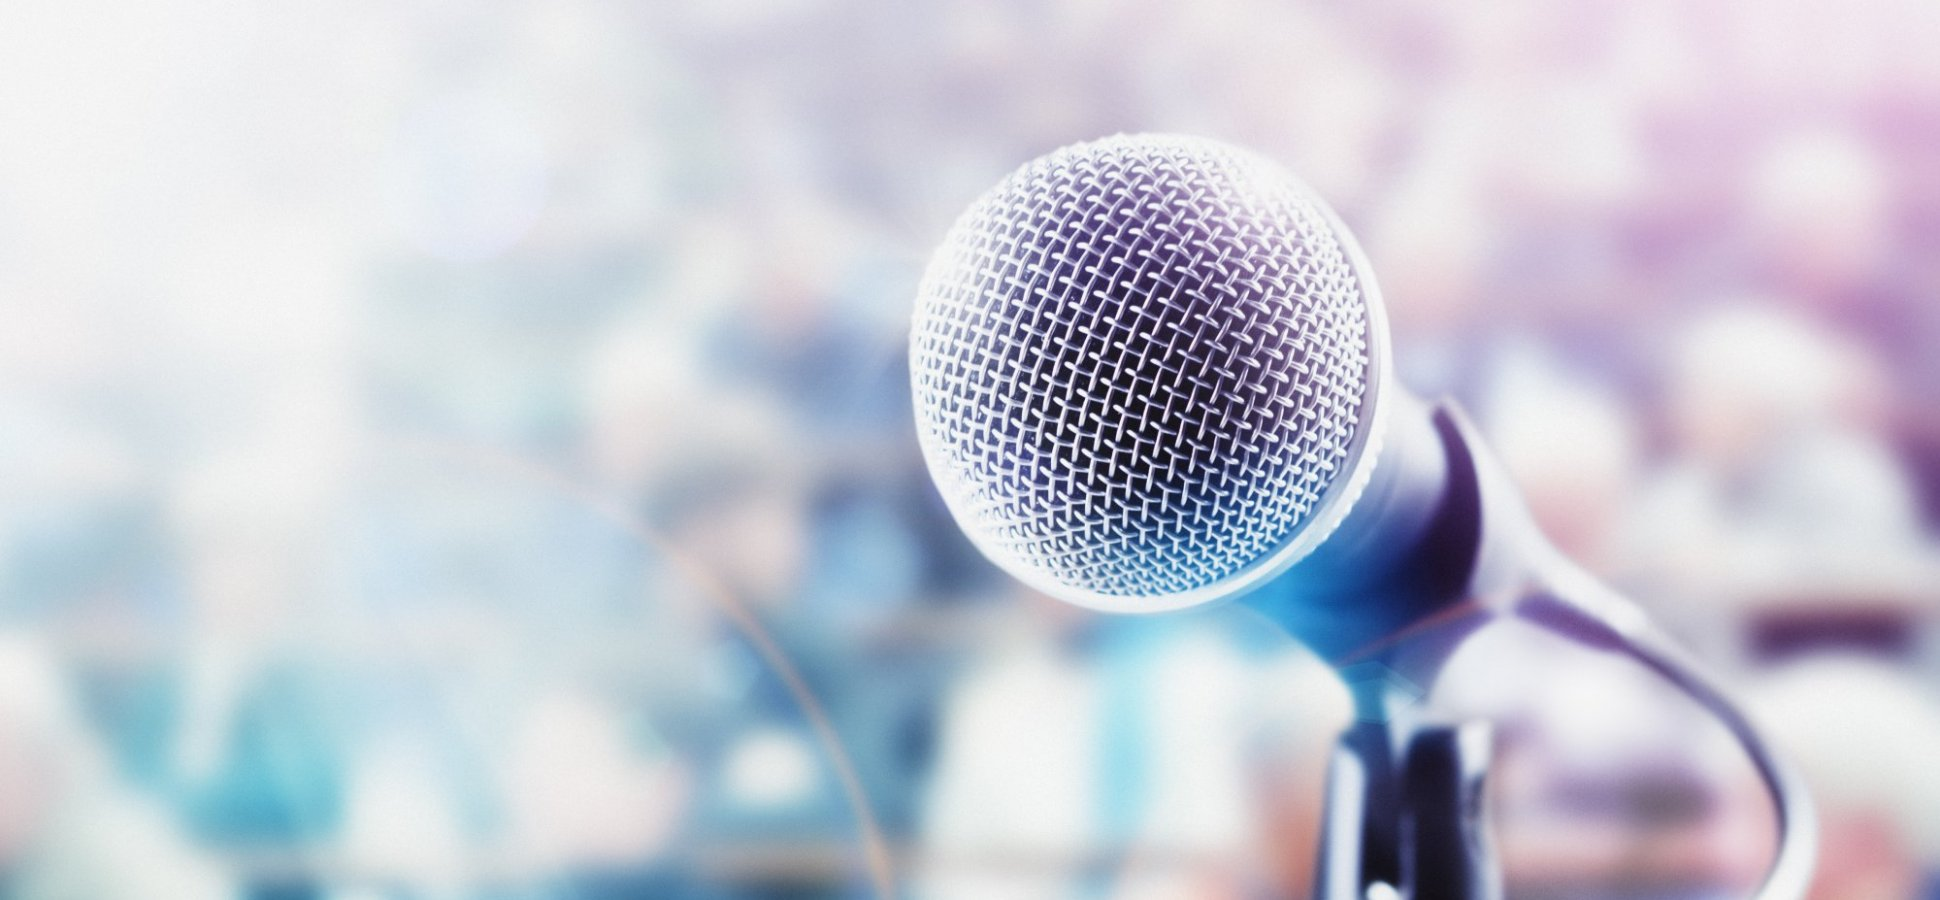 How to Ignite Your Speaking Skills in The New Year With These 3 New Year's Resolutions